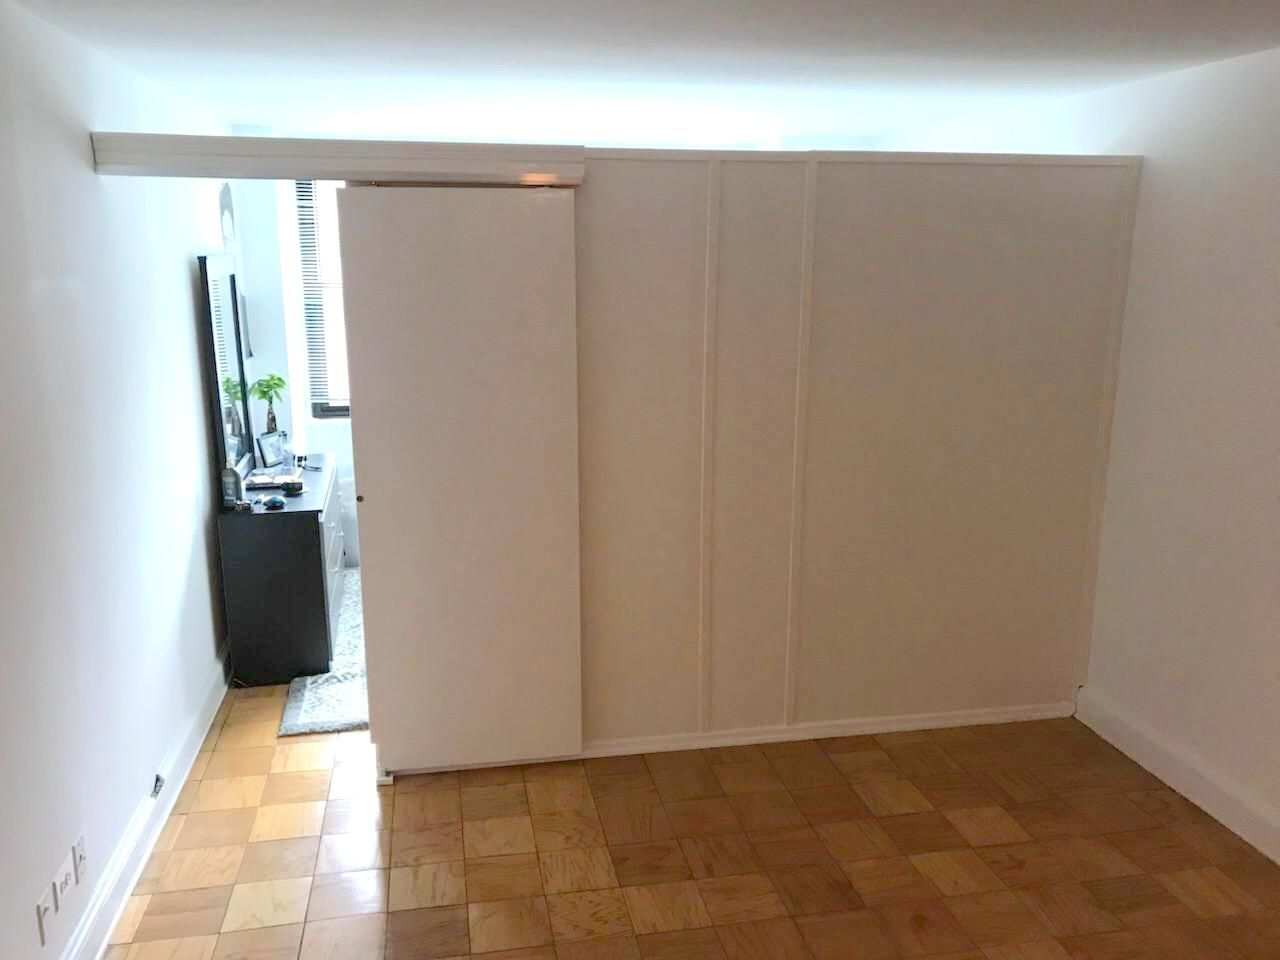 Temporary Room Divider With Sliding Door Call Us For All Your